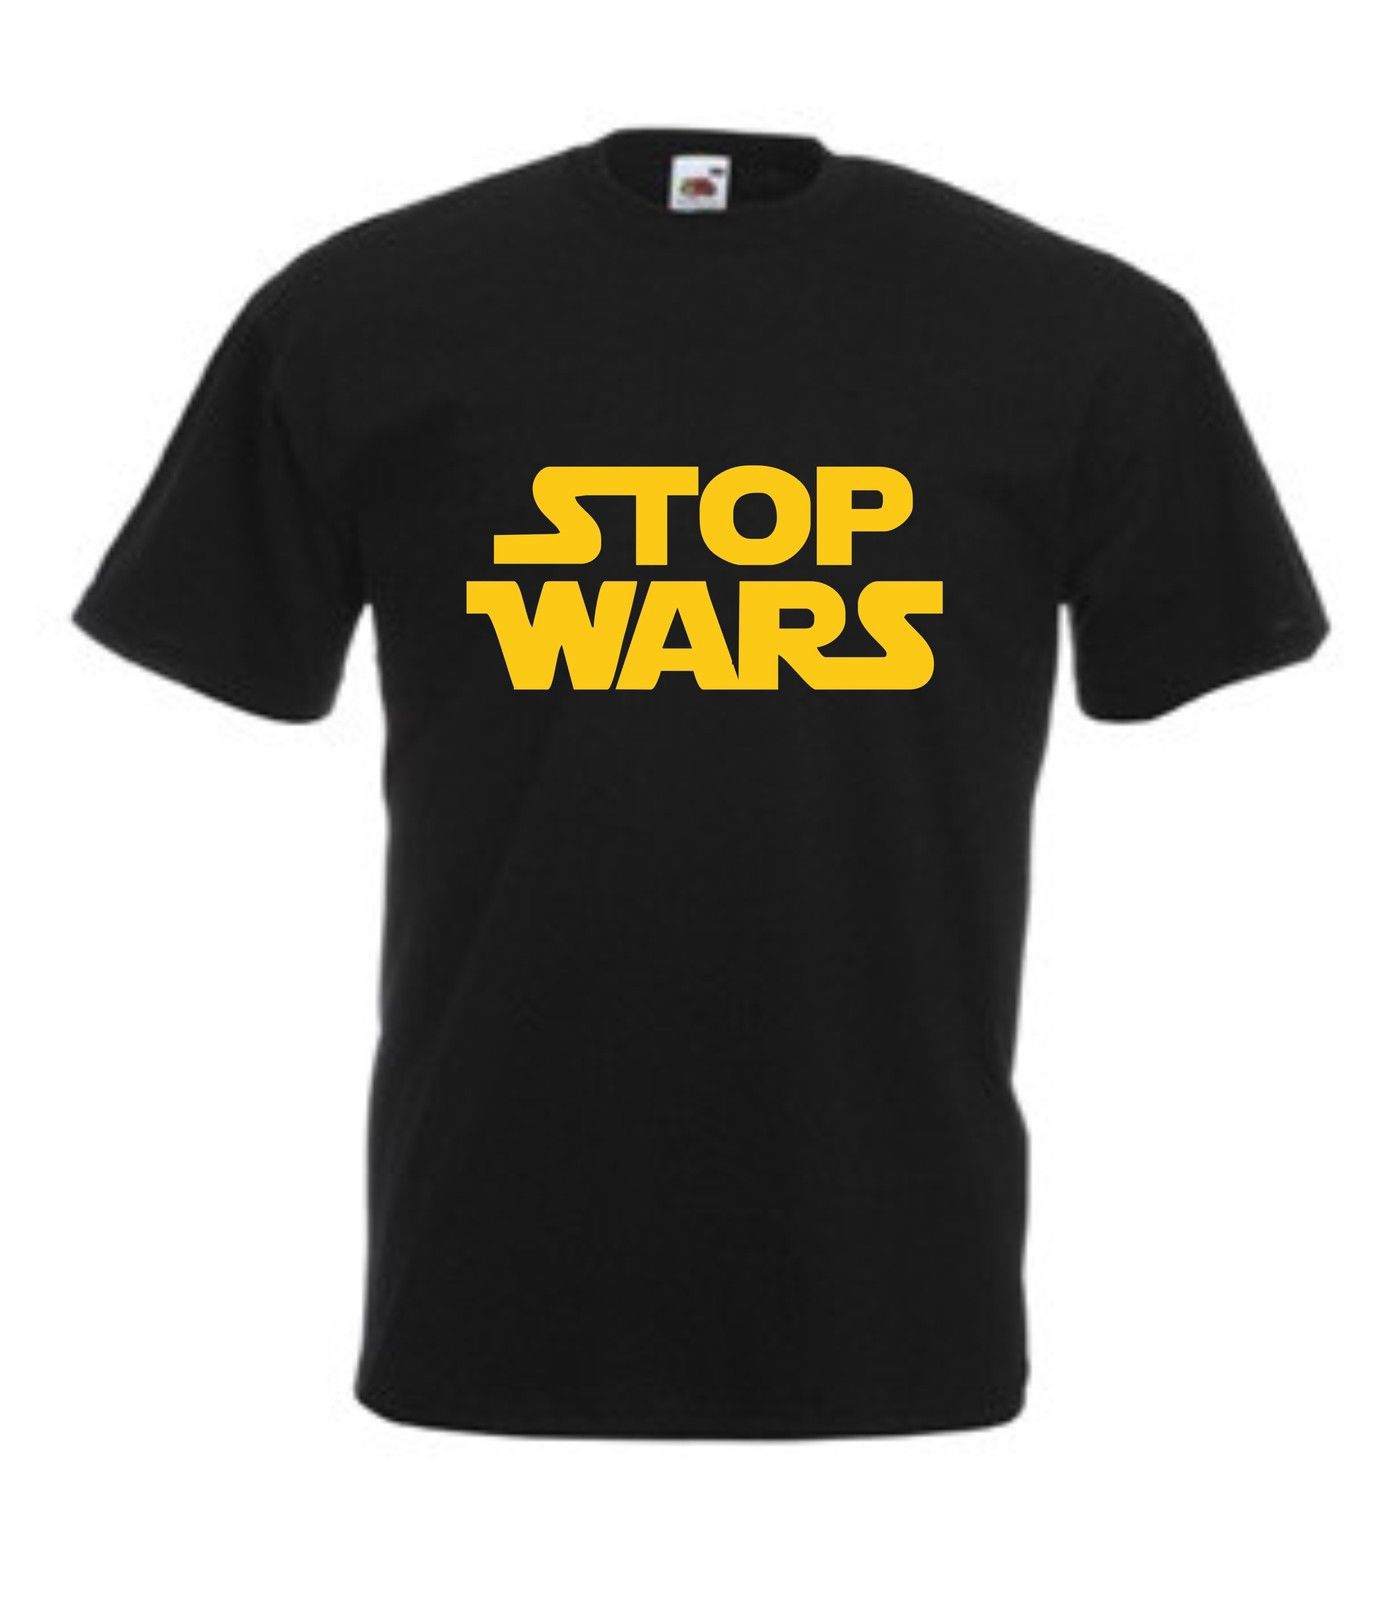 STOP WARS T-SHIRT Funny Men's S-XXL Black Tee